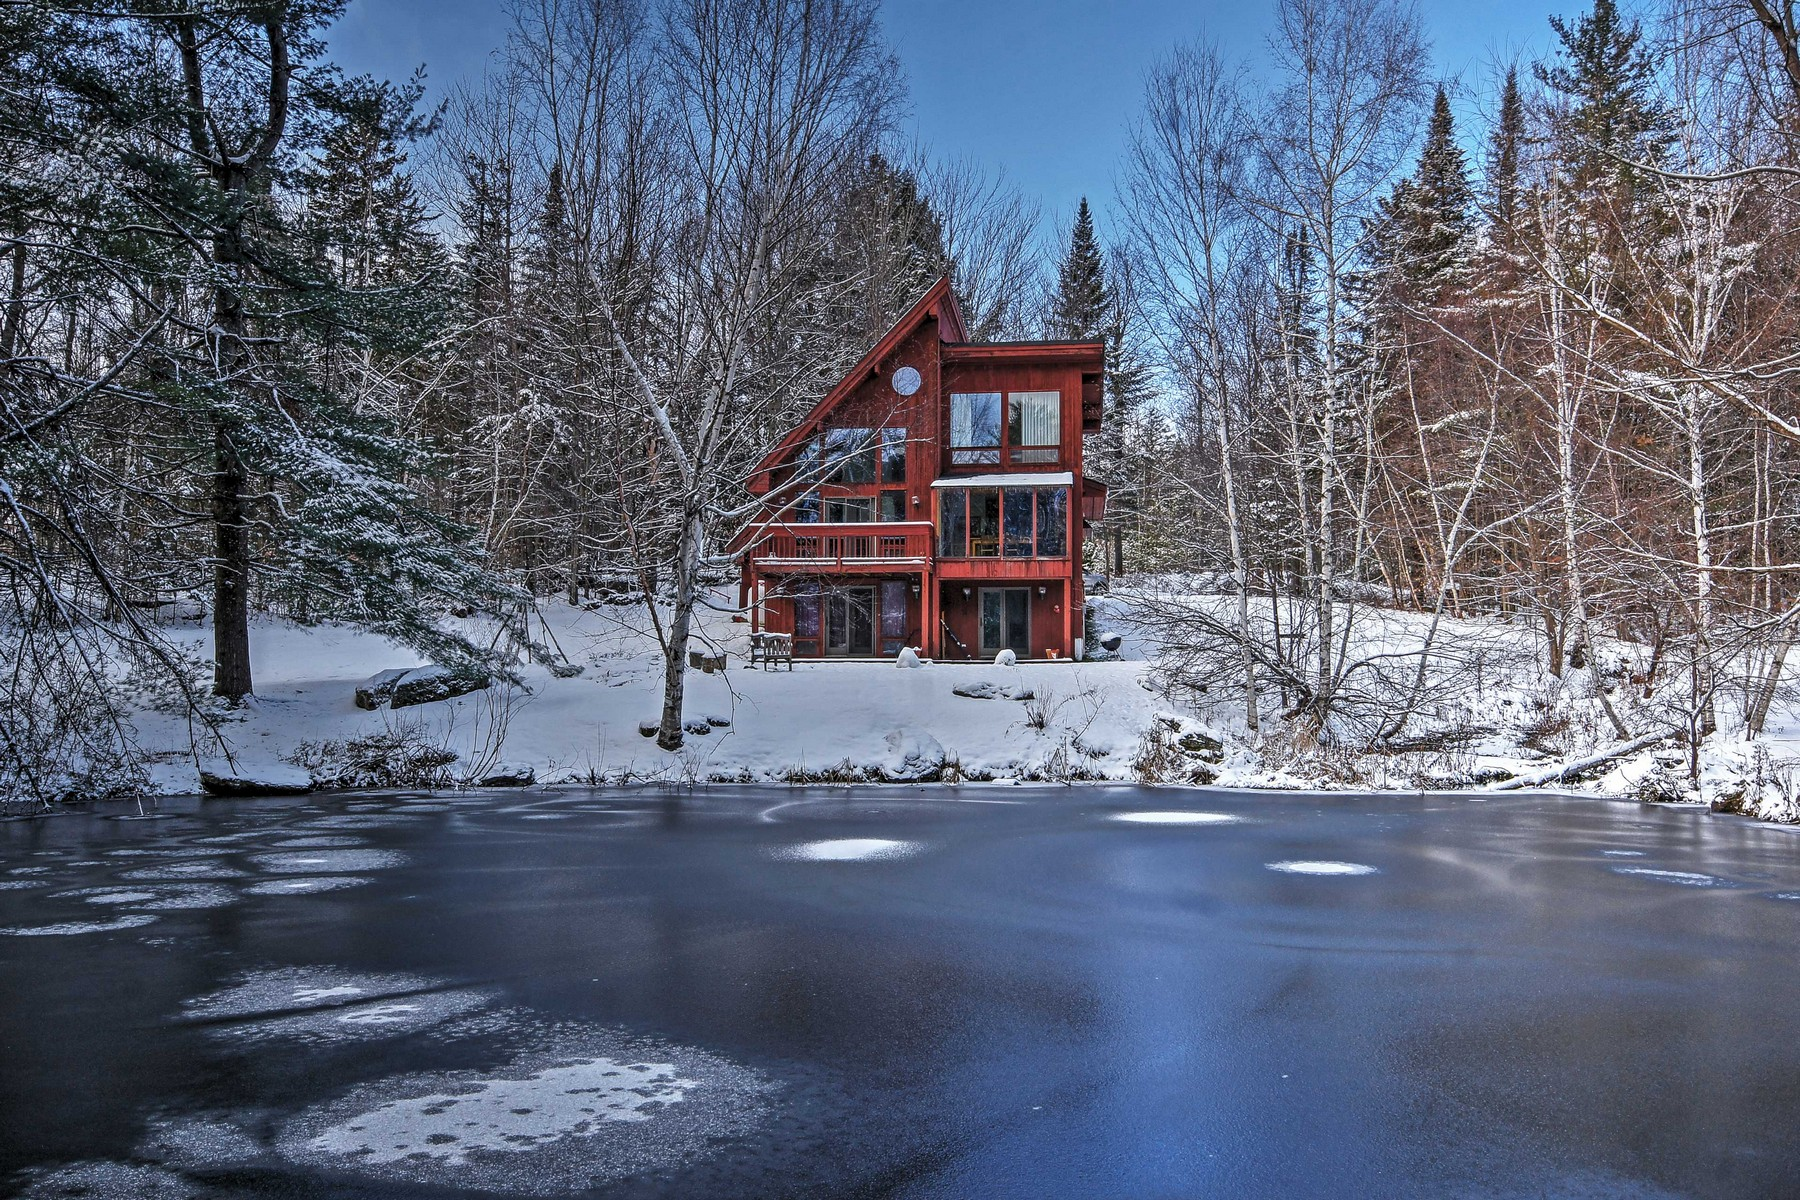 Single Family Home for Sale at 474 Hollow View Road, Stowe 474 Hollow View Rd Stowe, Vermont 05672 United States